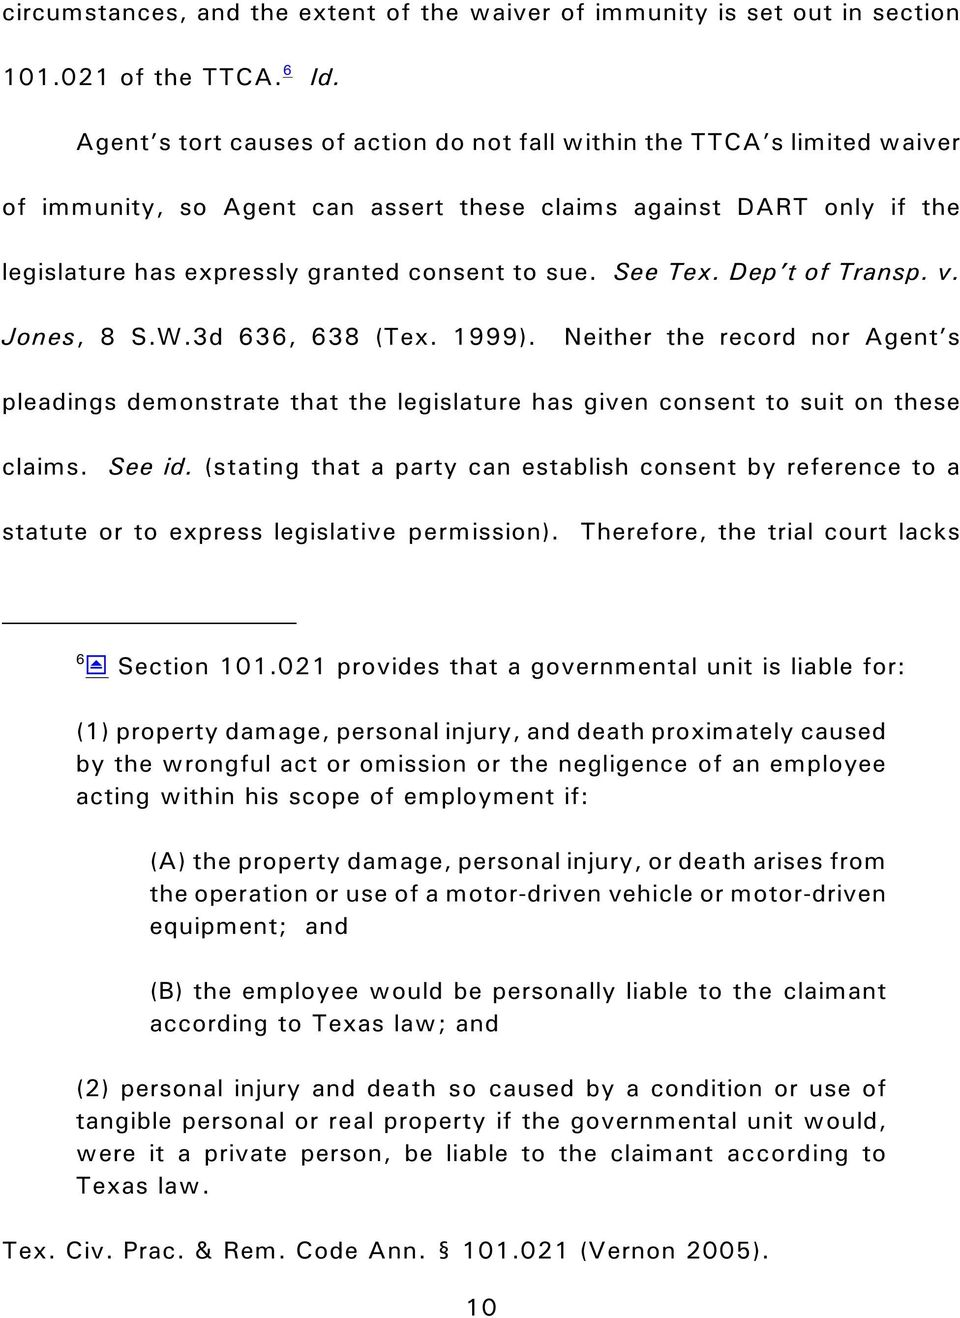 See Tex. Dep t of Transp. v. Jones, 8 S.W.3d 636, 638 (Tex. 1999). Neither the record nor Agent s pleadings demonstrate that the legislature has given consent to suit on these claims. See id.